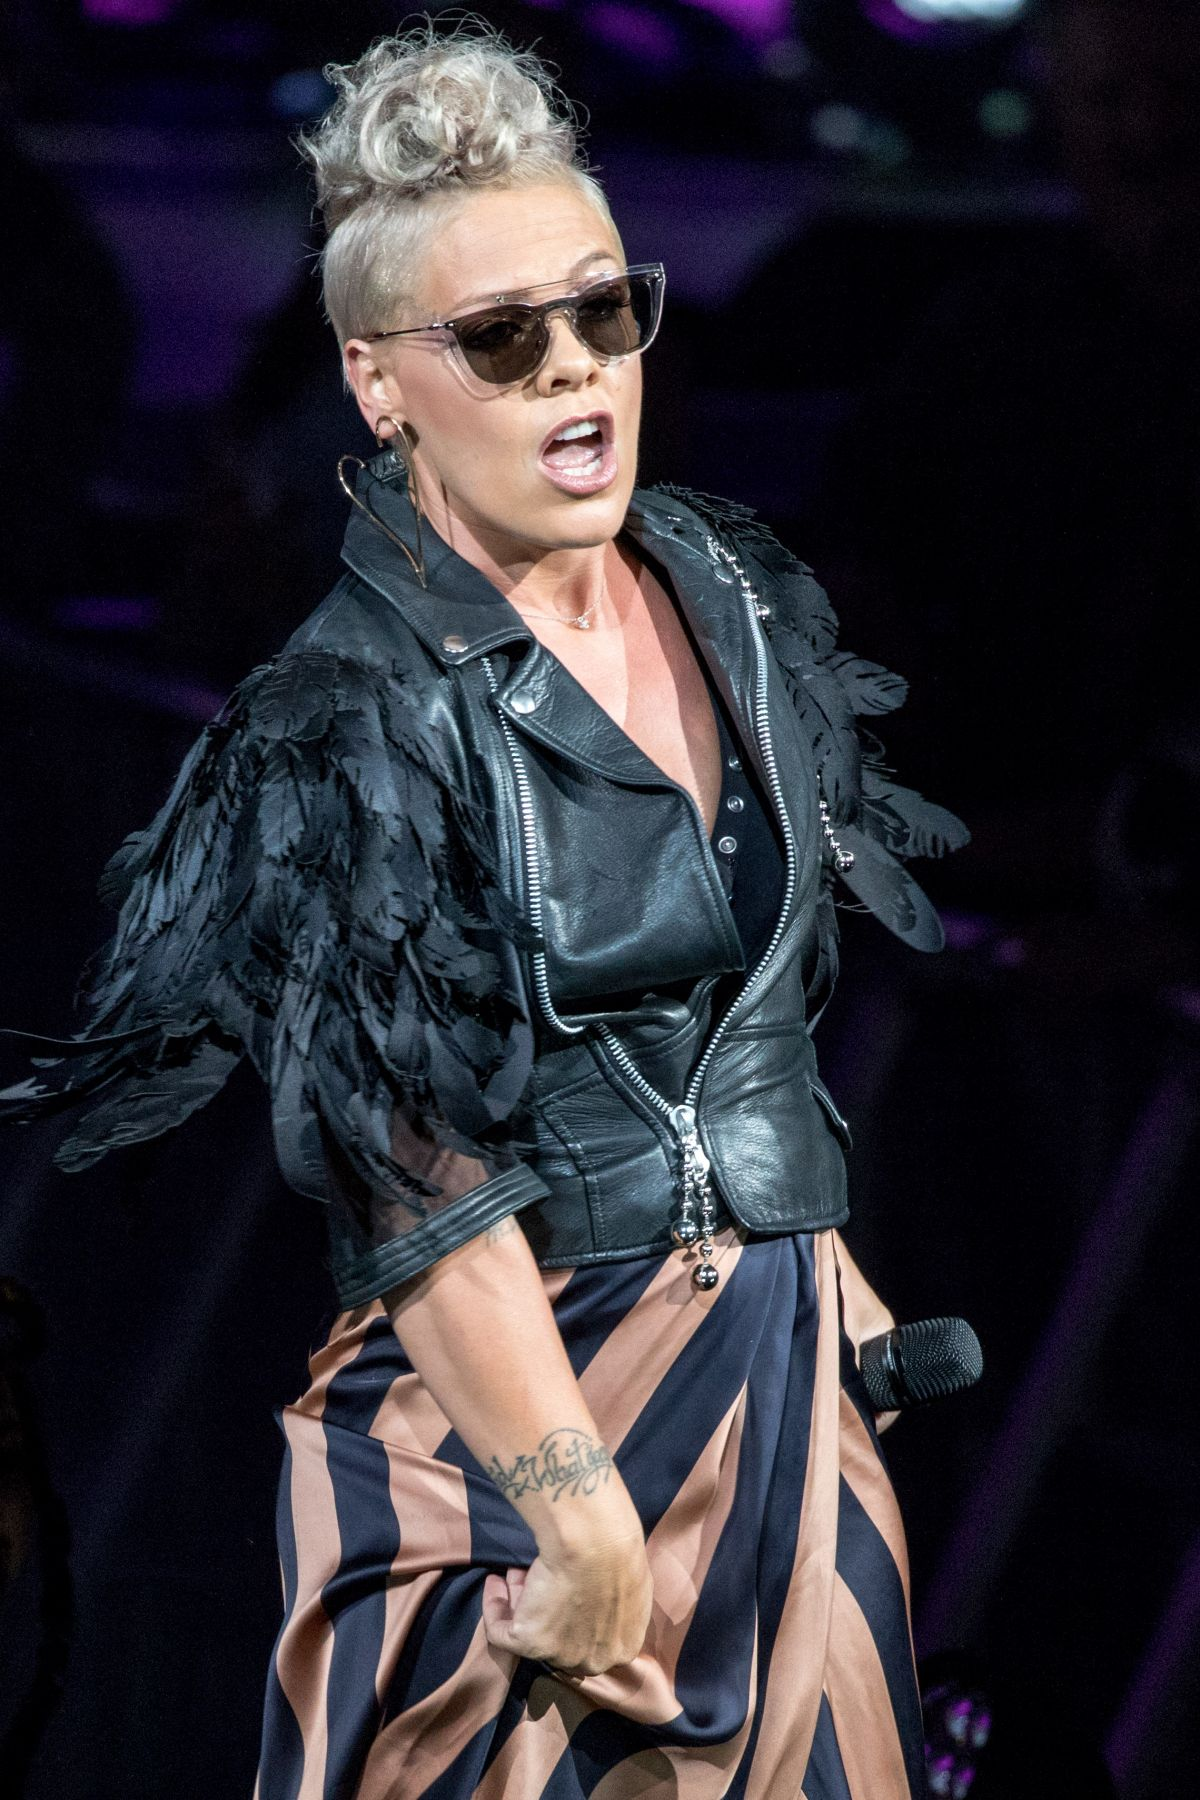 PINK Performs at Summerfest Music Festival 2017 in Milwaukee 07/01/2017